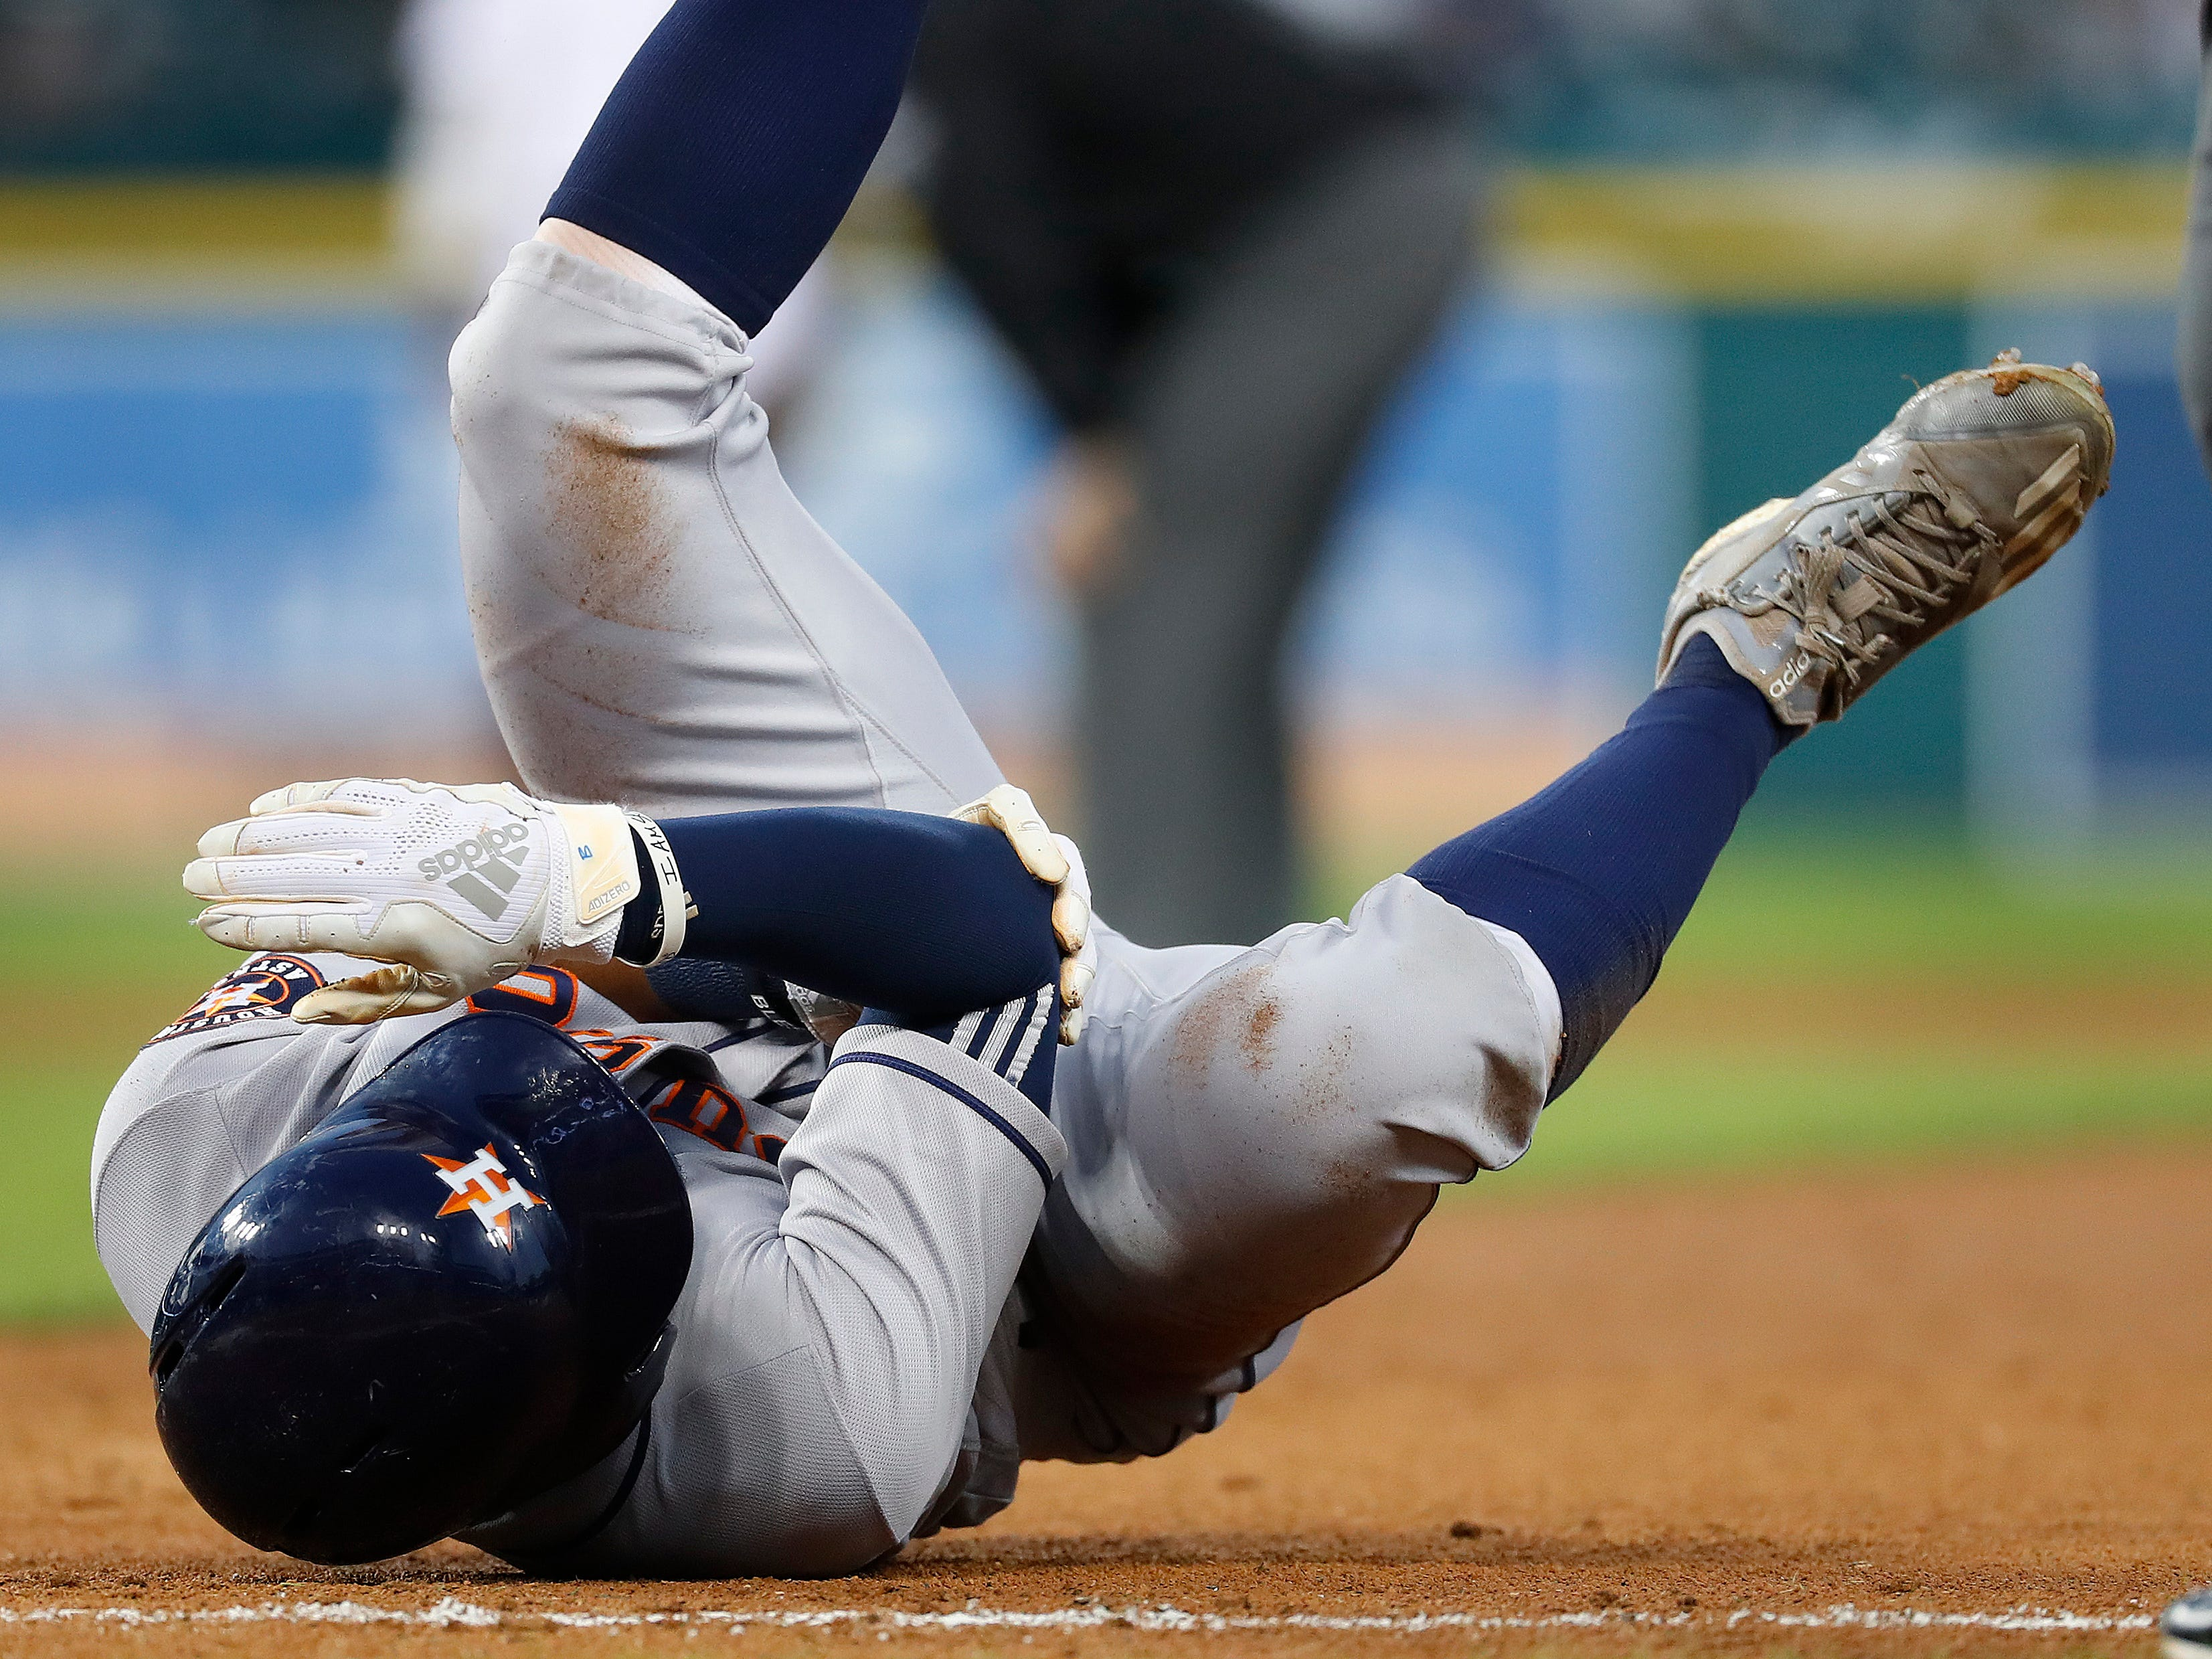 Houston Astros' Tony Kemp holds his arm after being hit by a throw at first base in the fourth inning.